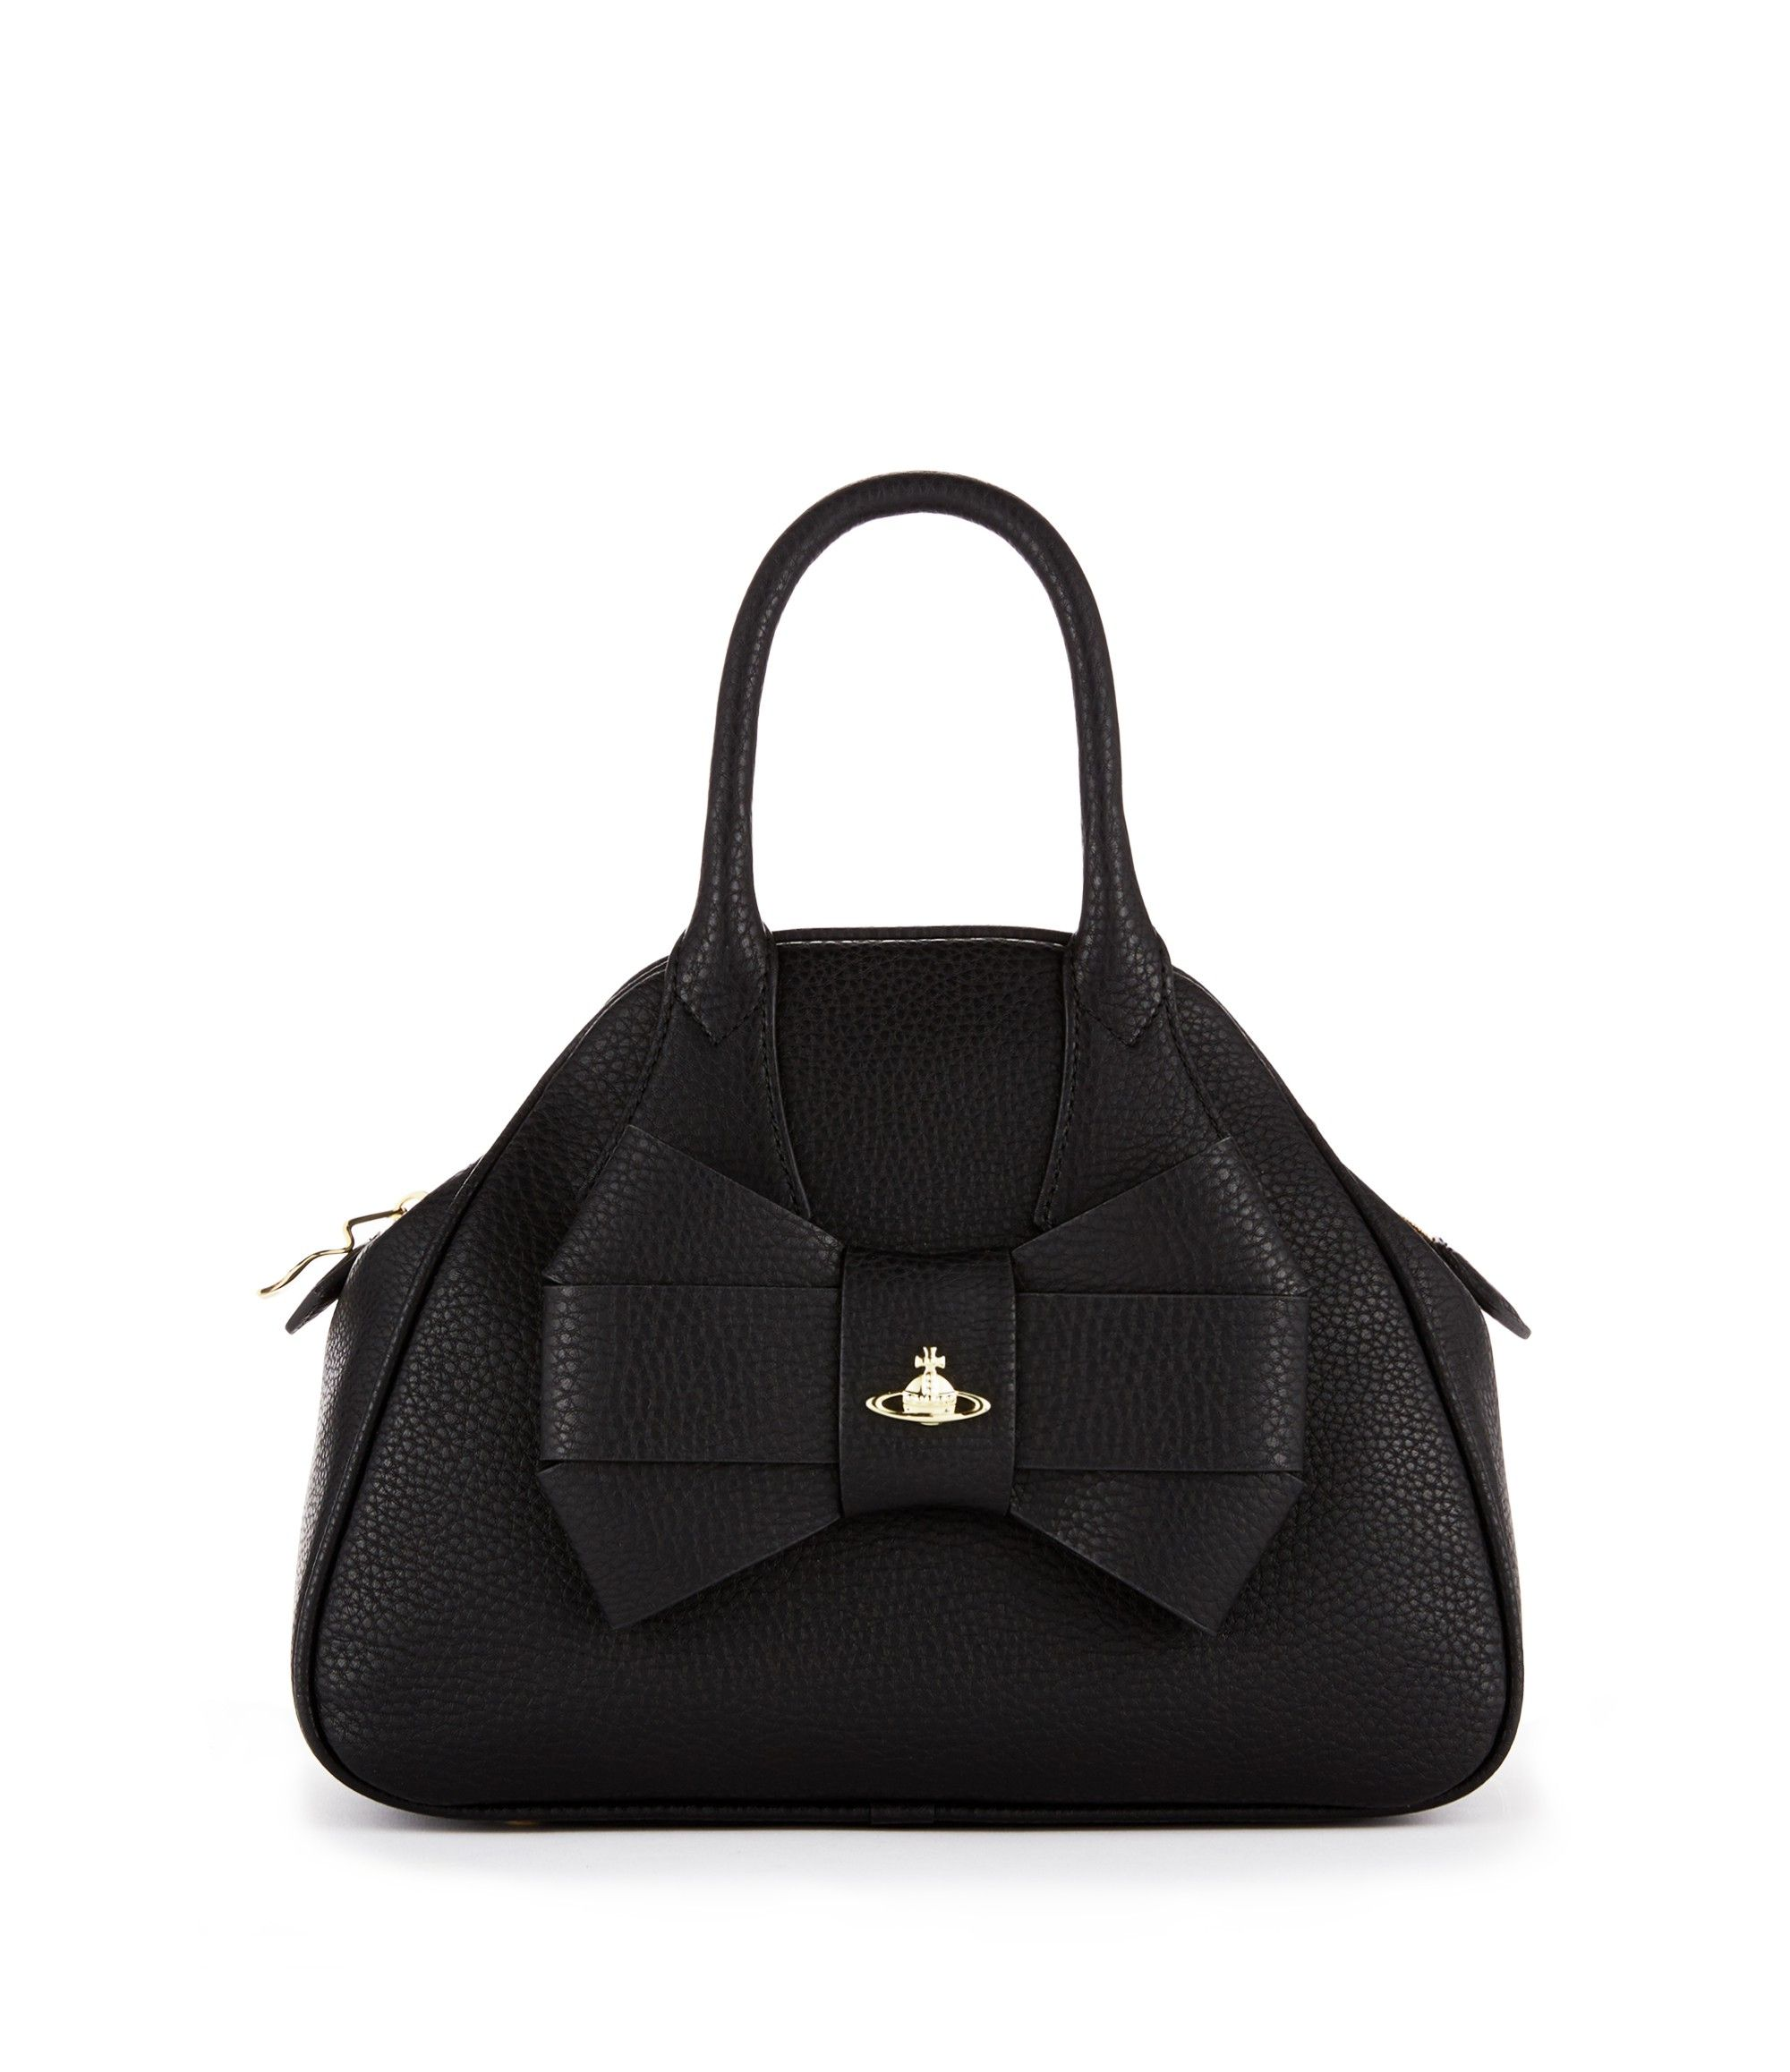 22b4984bd8 Bow Bag 6988 Black. Bow Bag 6988 Black Vivienne Westwood ...